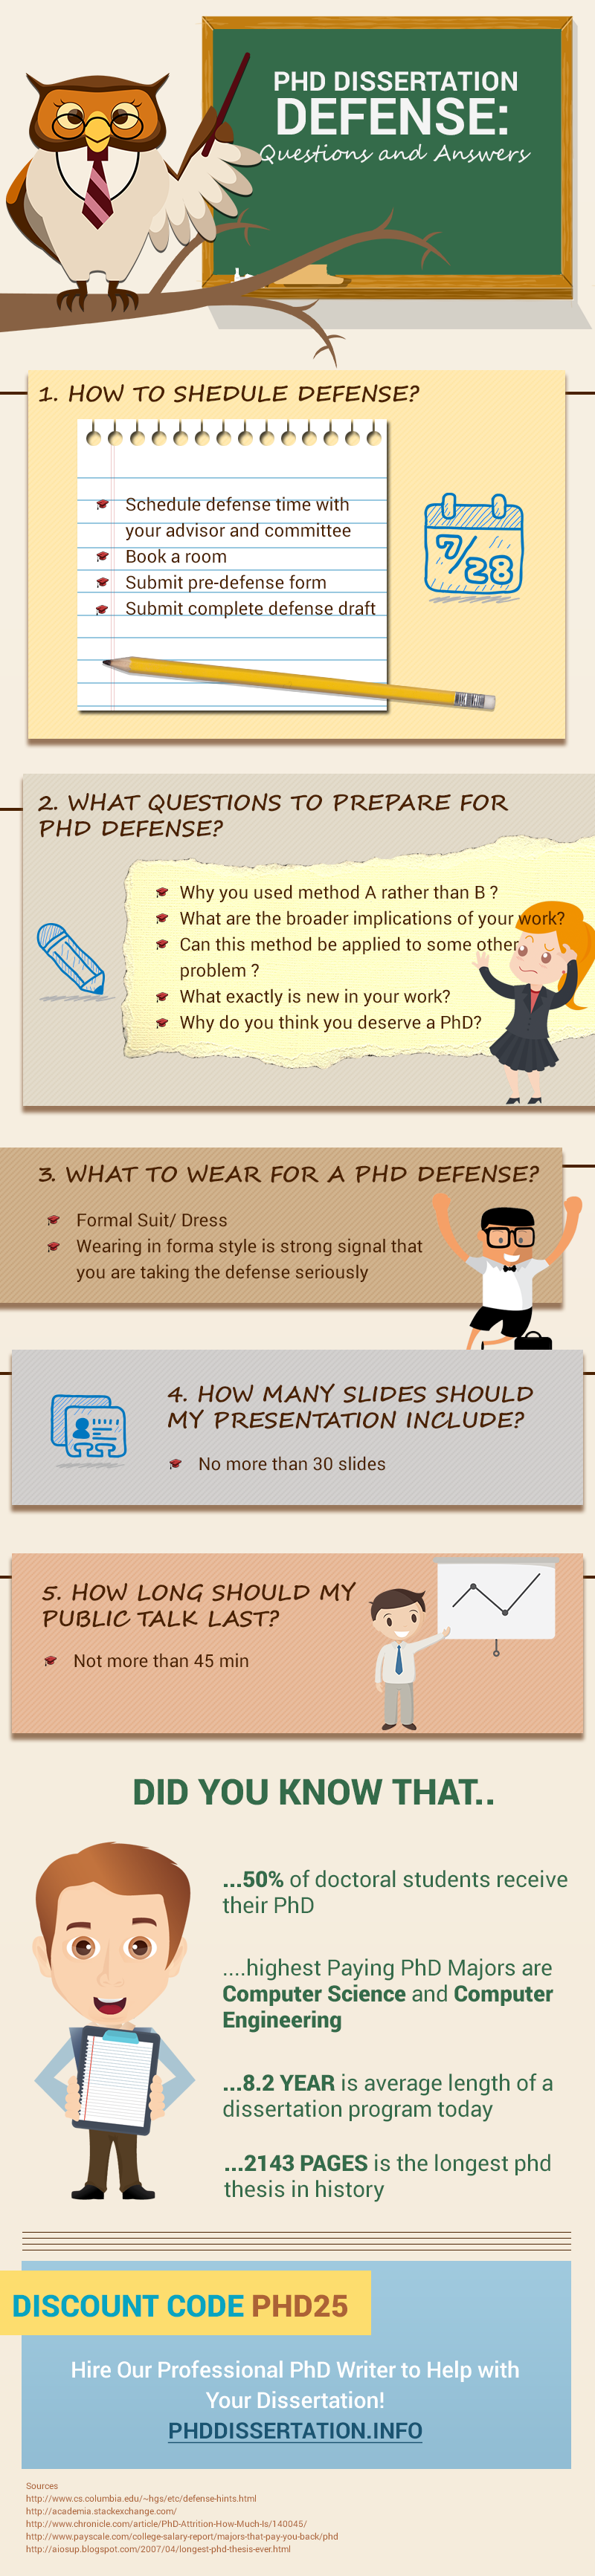 doctoral dissertation defense questions Thesis/dissertation defense and revisions typical defense format: the student presents the results of the research in 15-30 minutes, followed by questions from the audience and committee.